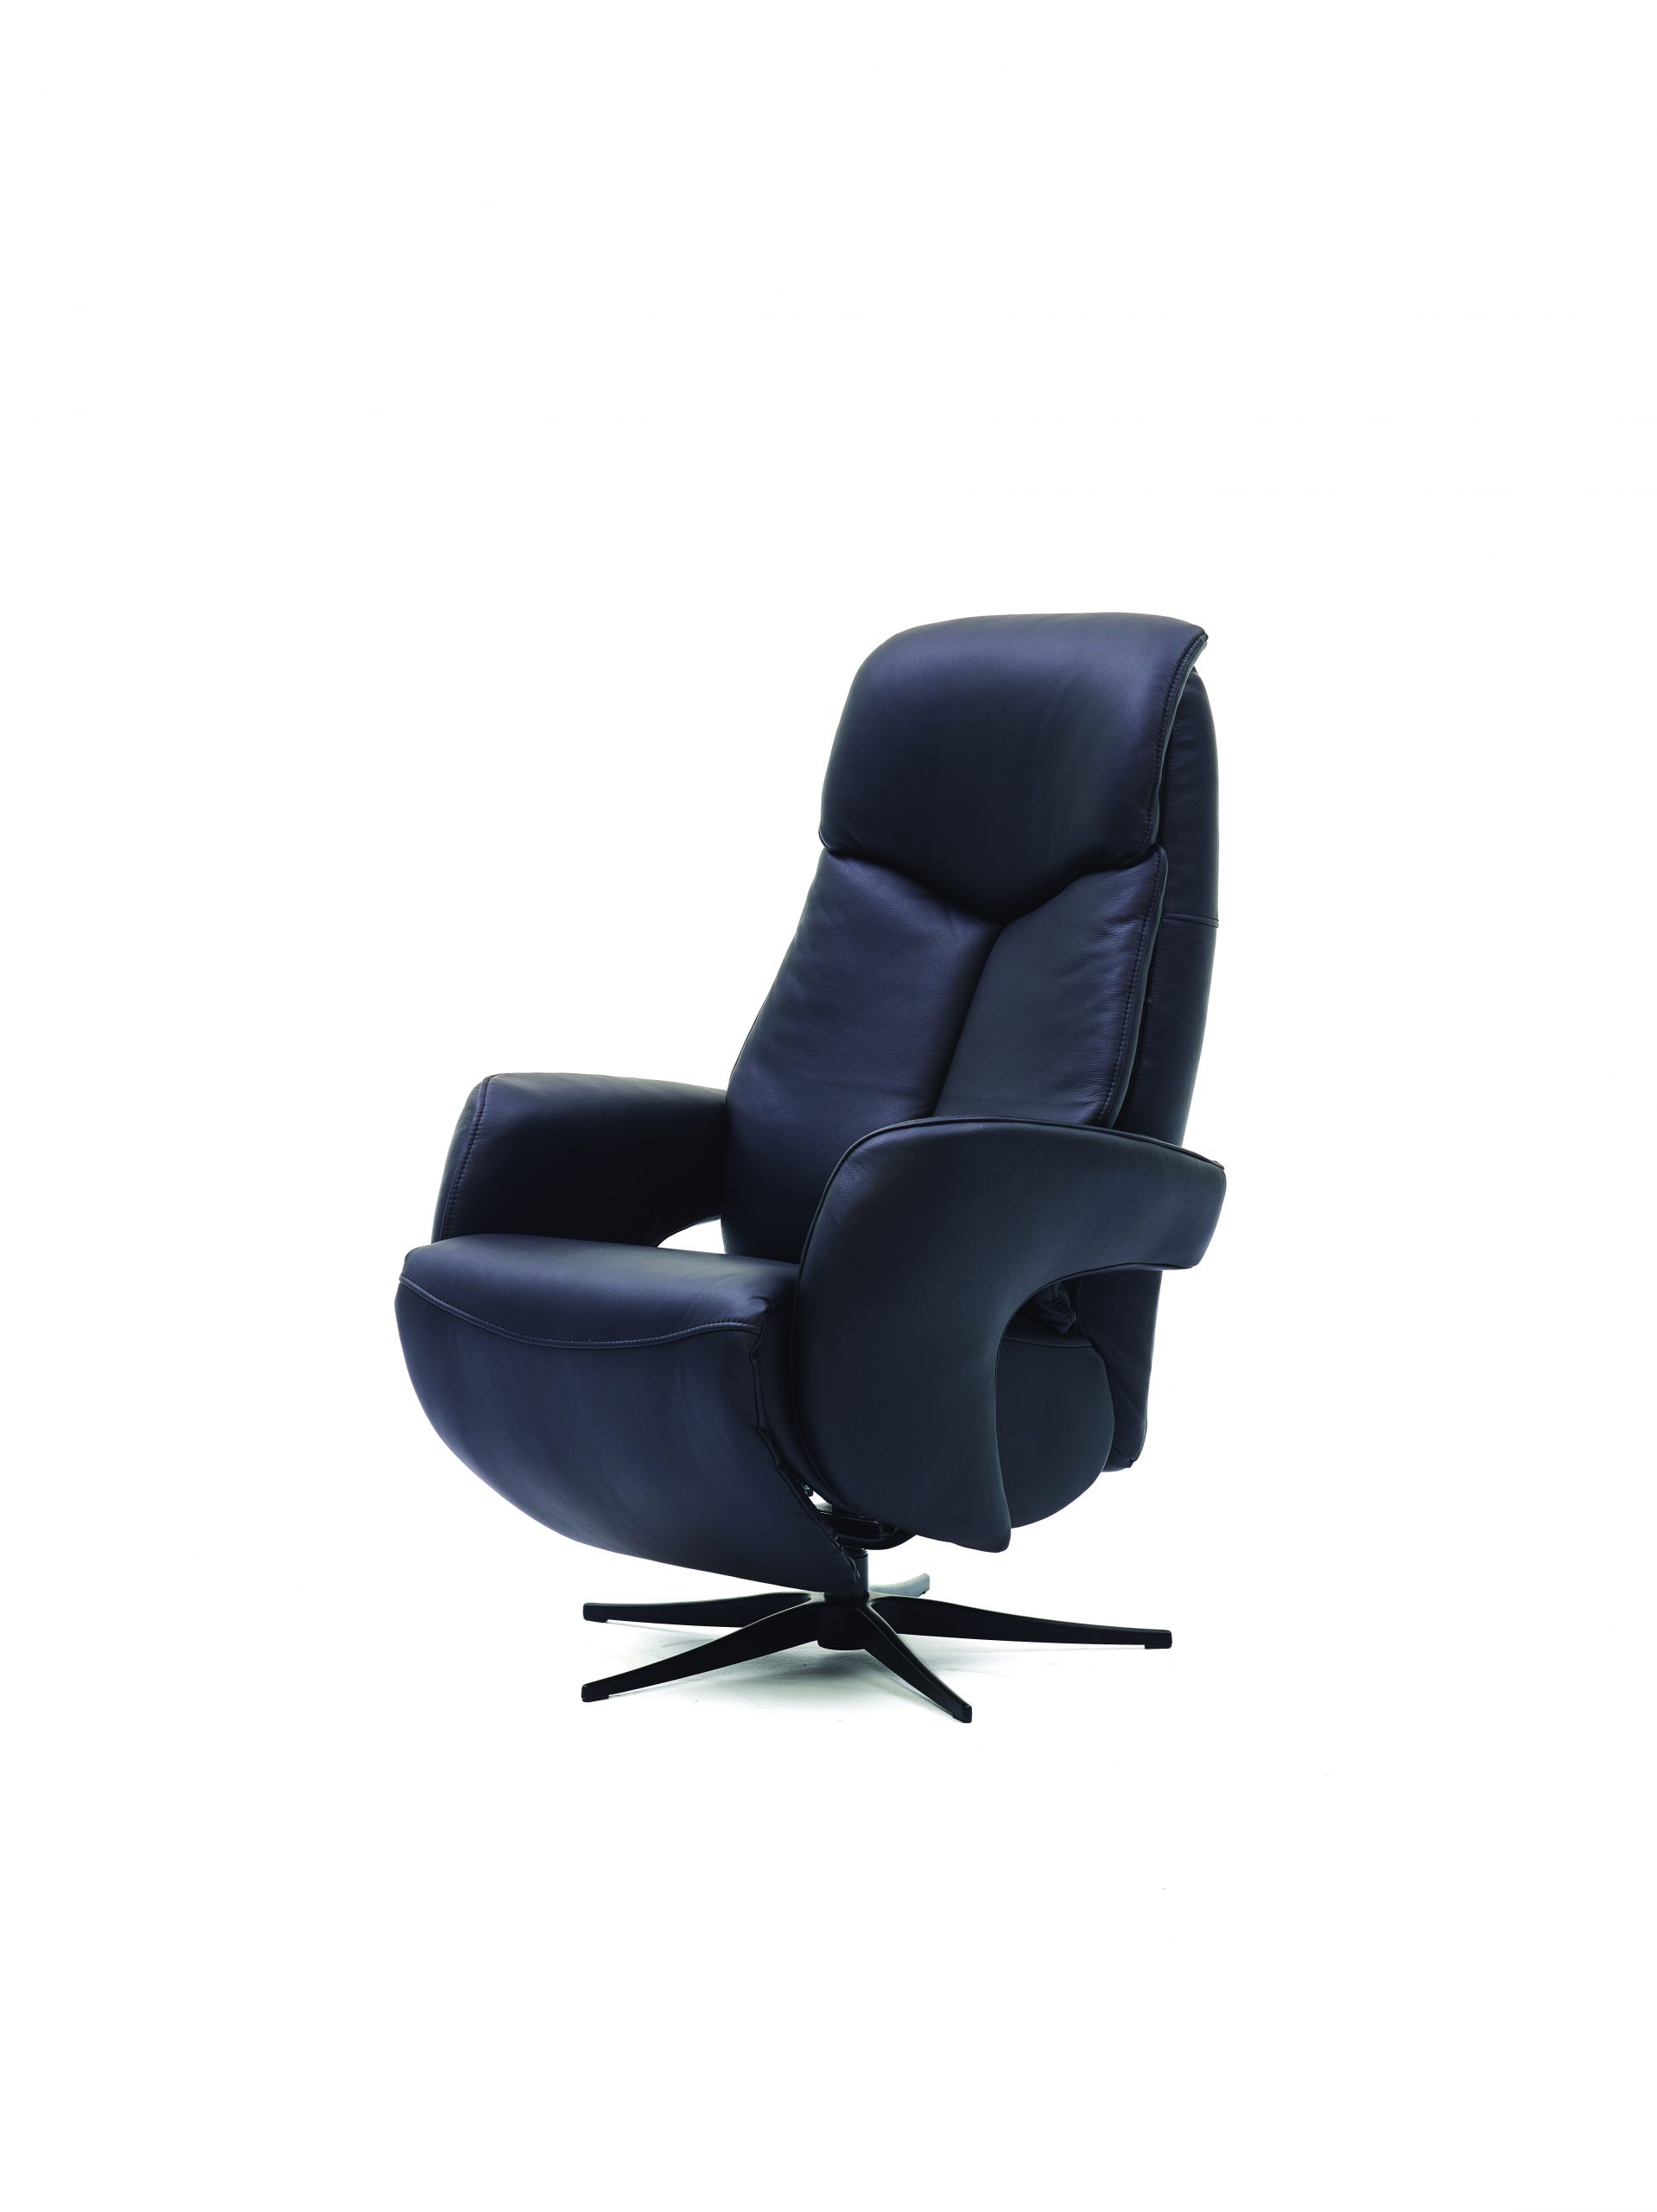 Fauteuil Relax Swing – Conforama Luxembourg encequiconcerne Conforama Fauteuiil